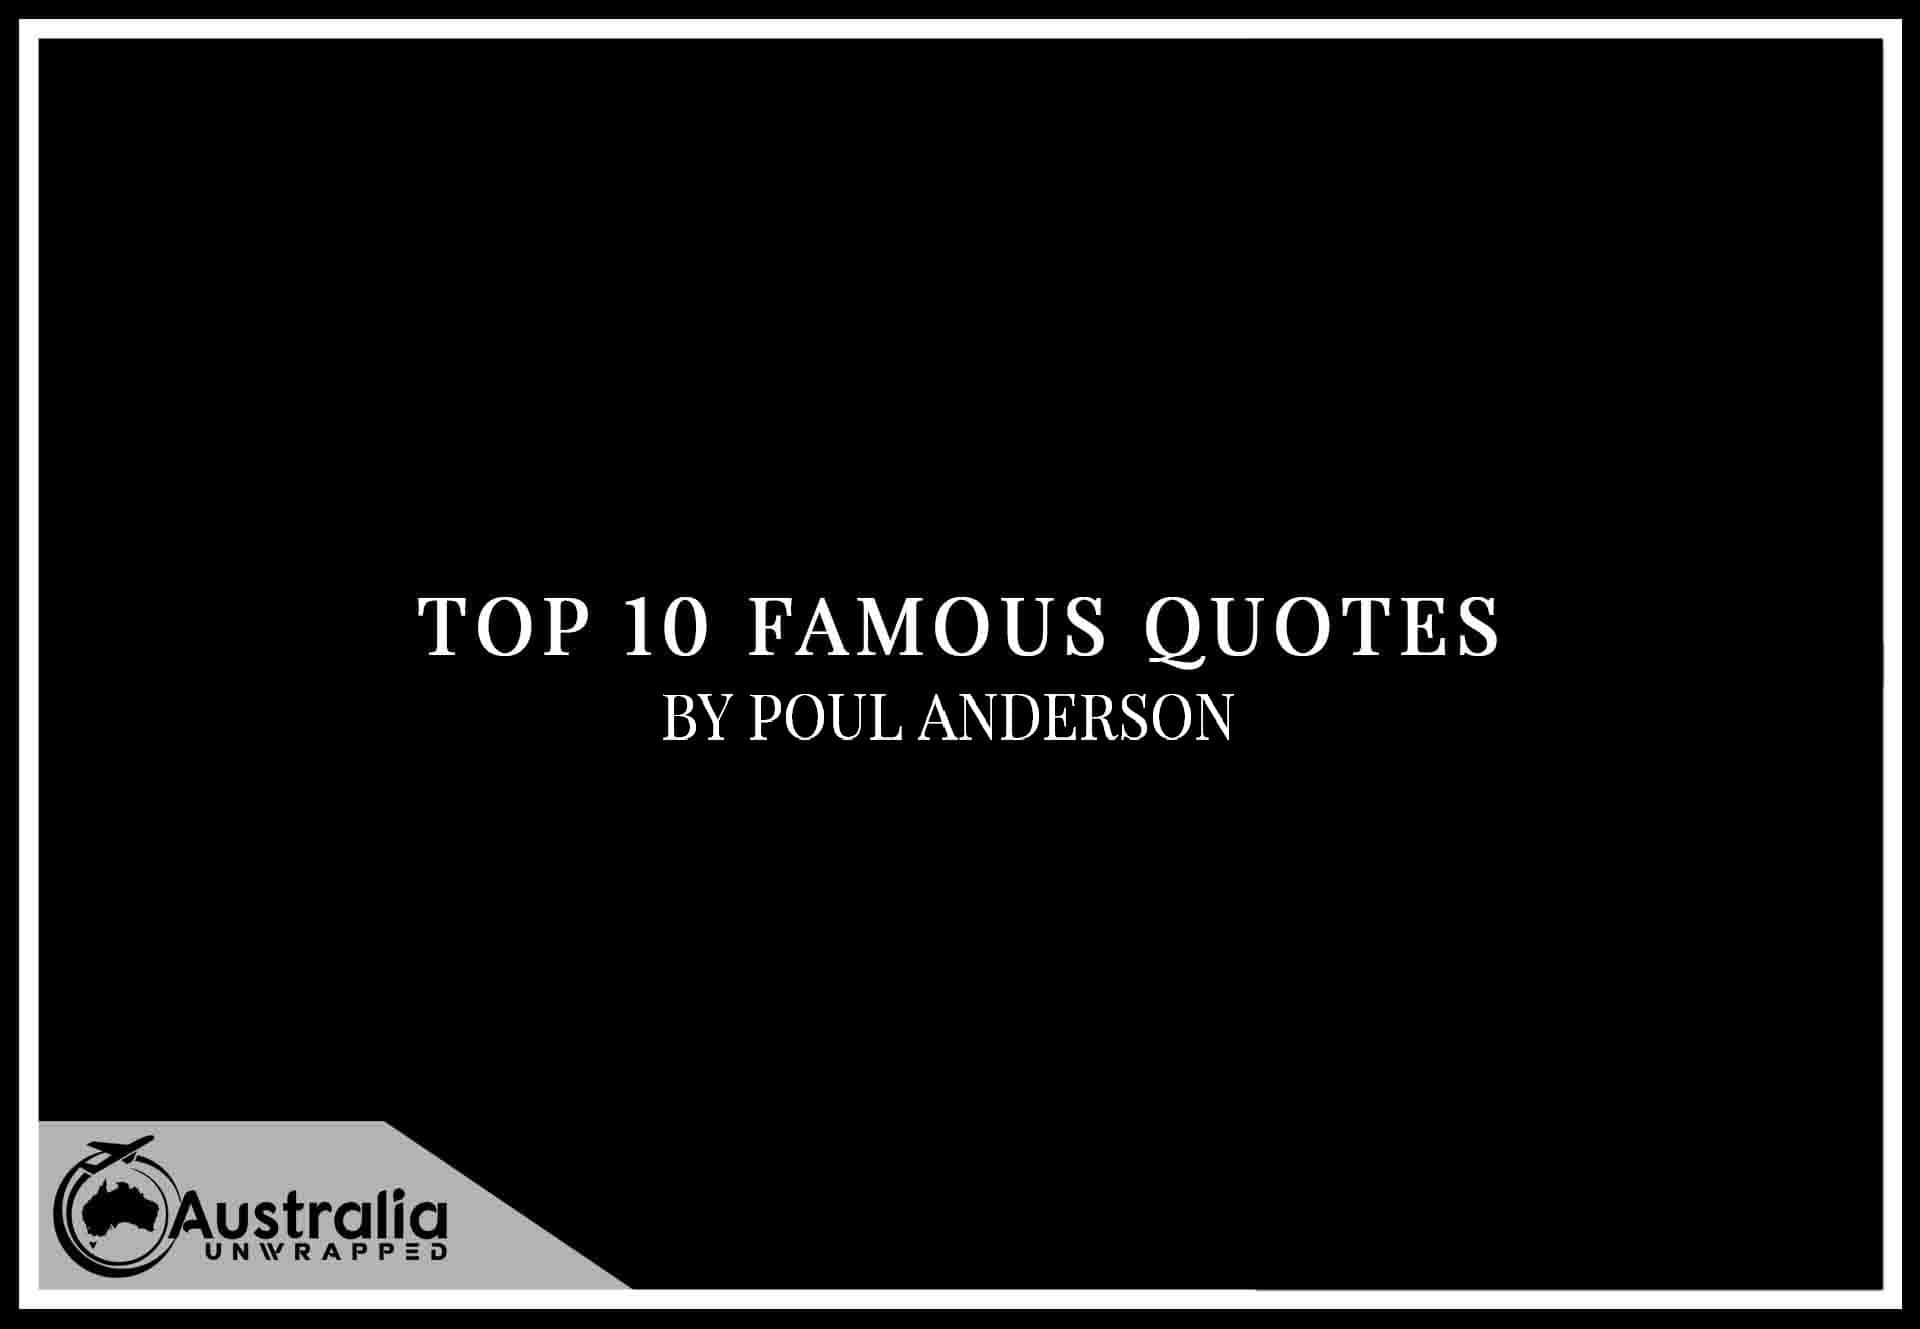 Top 10 Famous Quotes by Author Poul Anderson